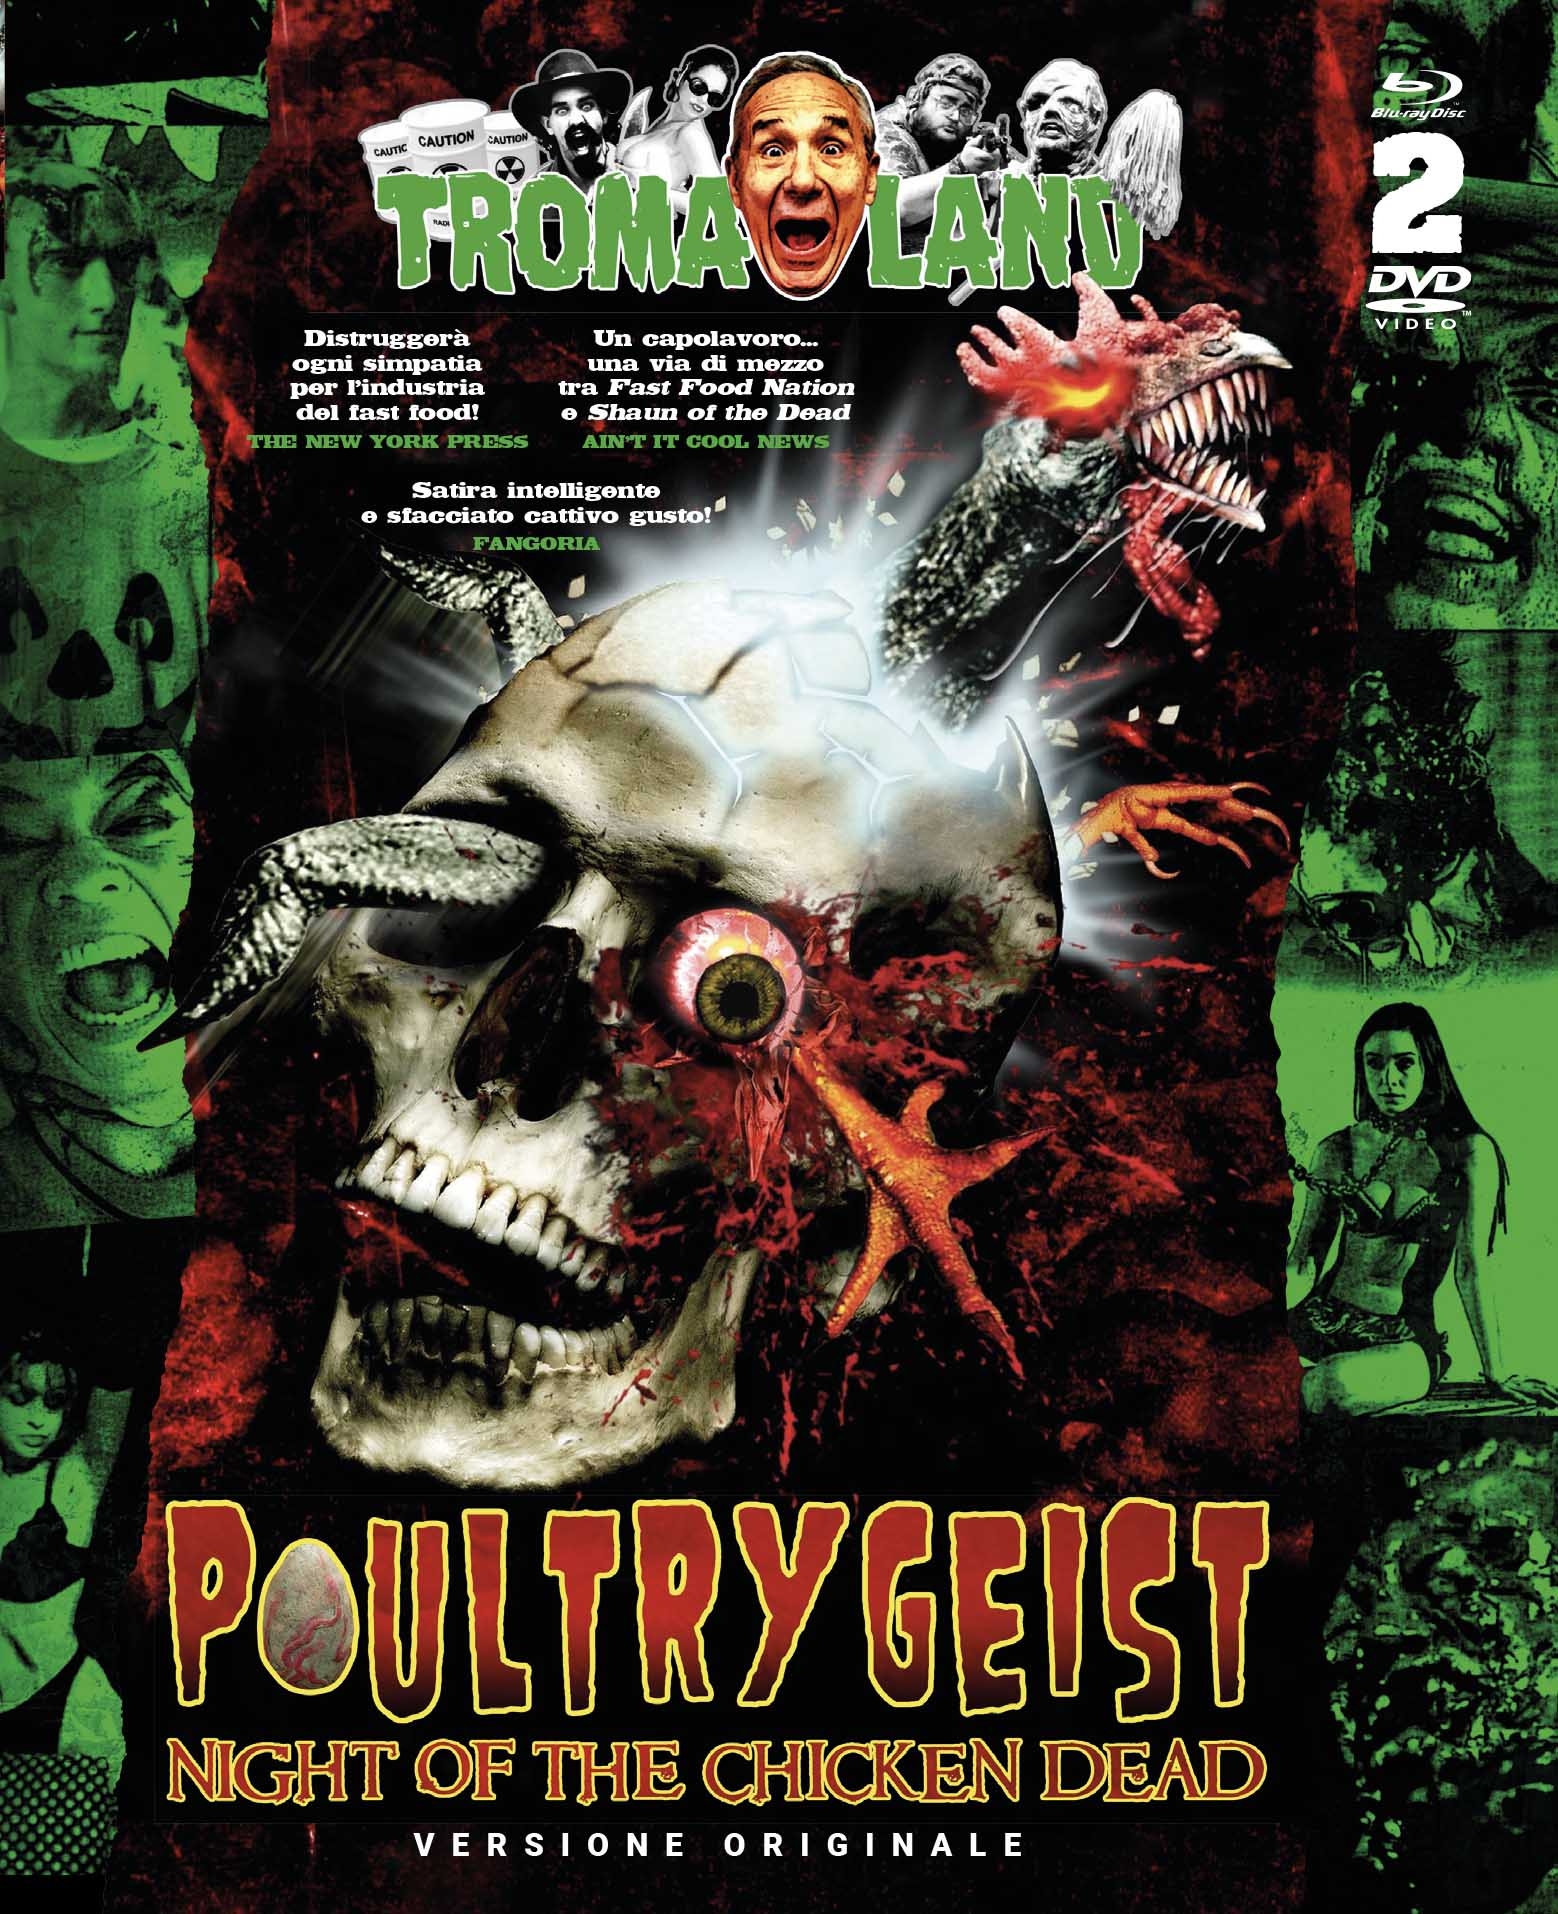 POULTRYGEIST - NIGHT OF THE CHICKEN DEAD (BLU-RAY+DVD) - AUDIO I - Clicca l'immagine per chiudere